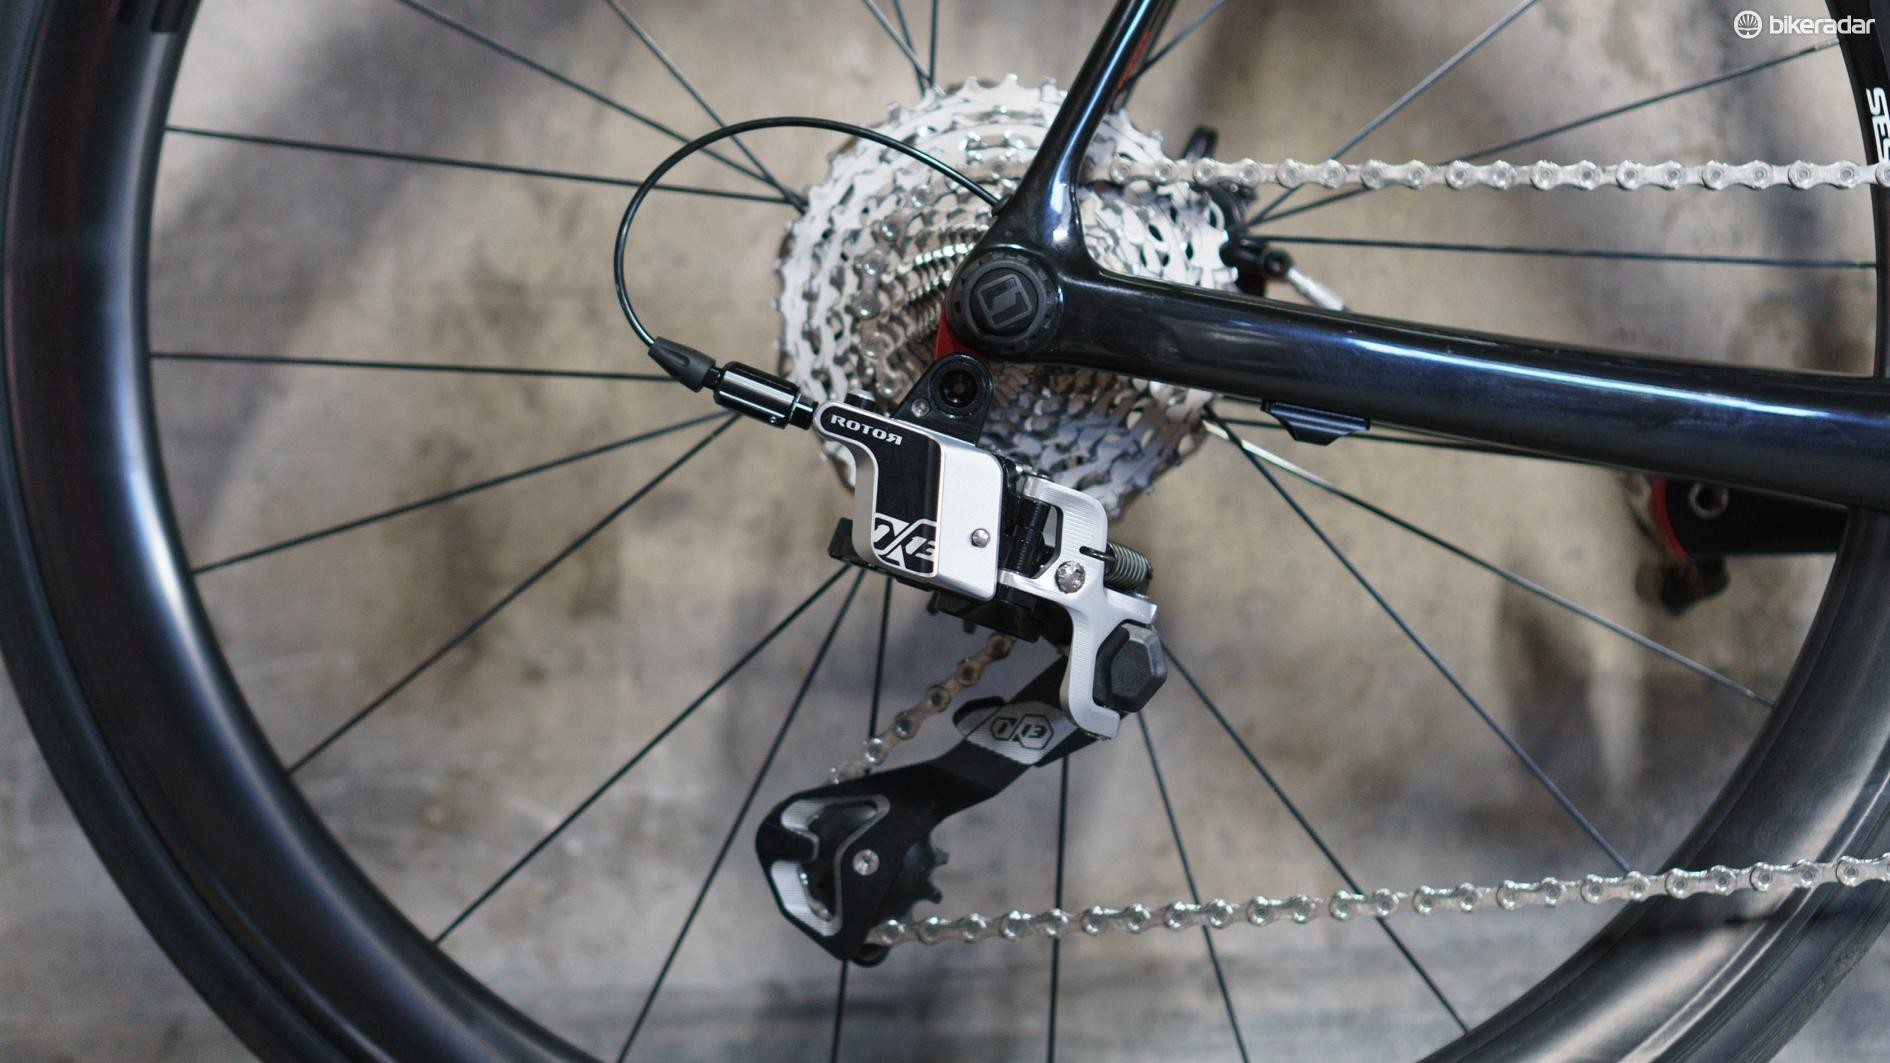 The groupset isn't perfect but that didn't stop me enjoying using it